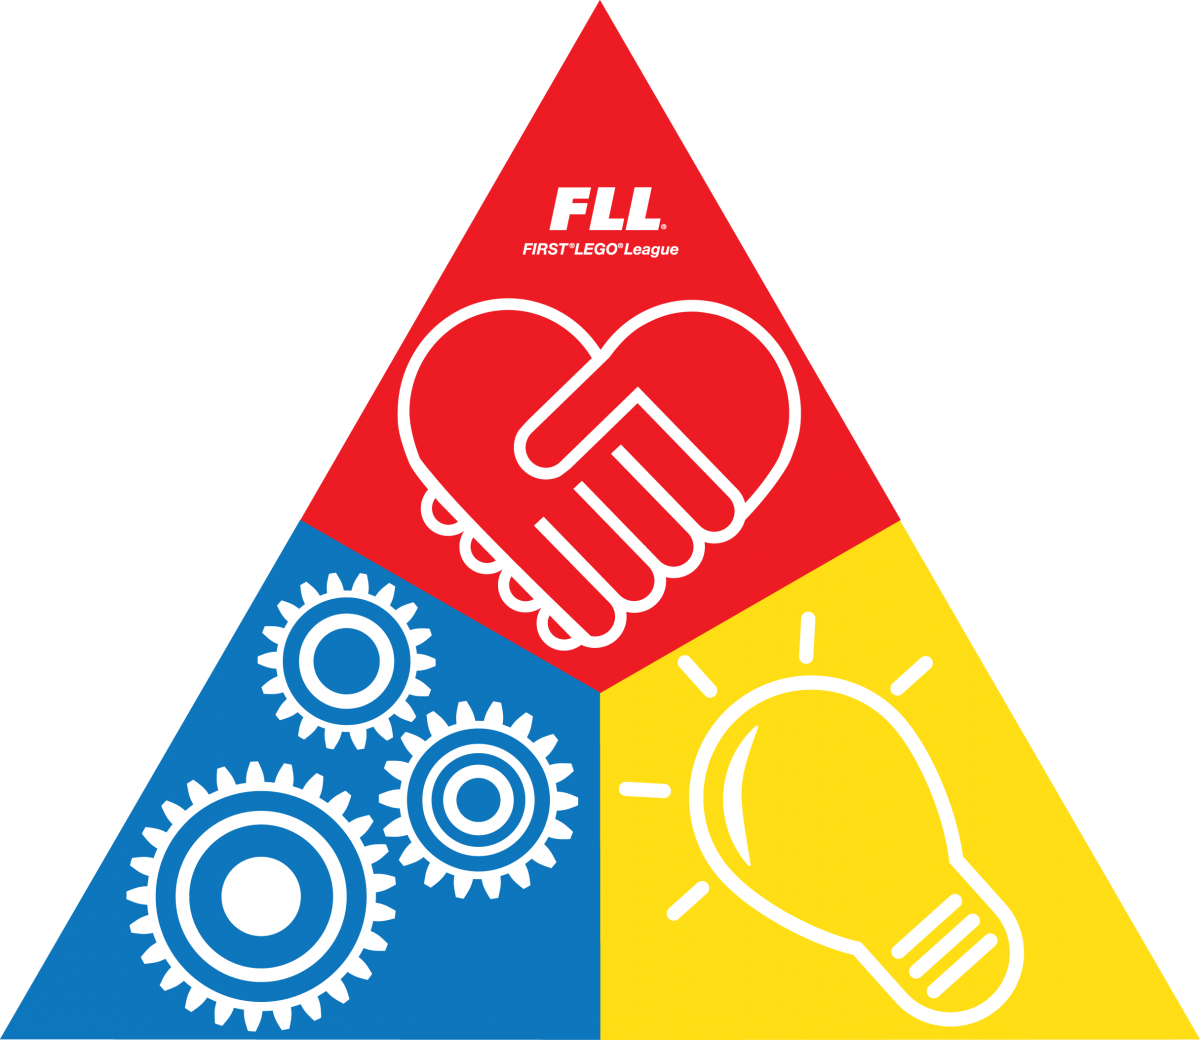 First lego league clipart png free download Image result for lego league core values poster | Lego League ... png free download